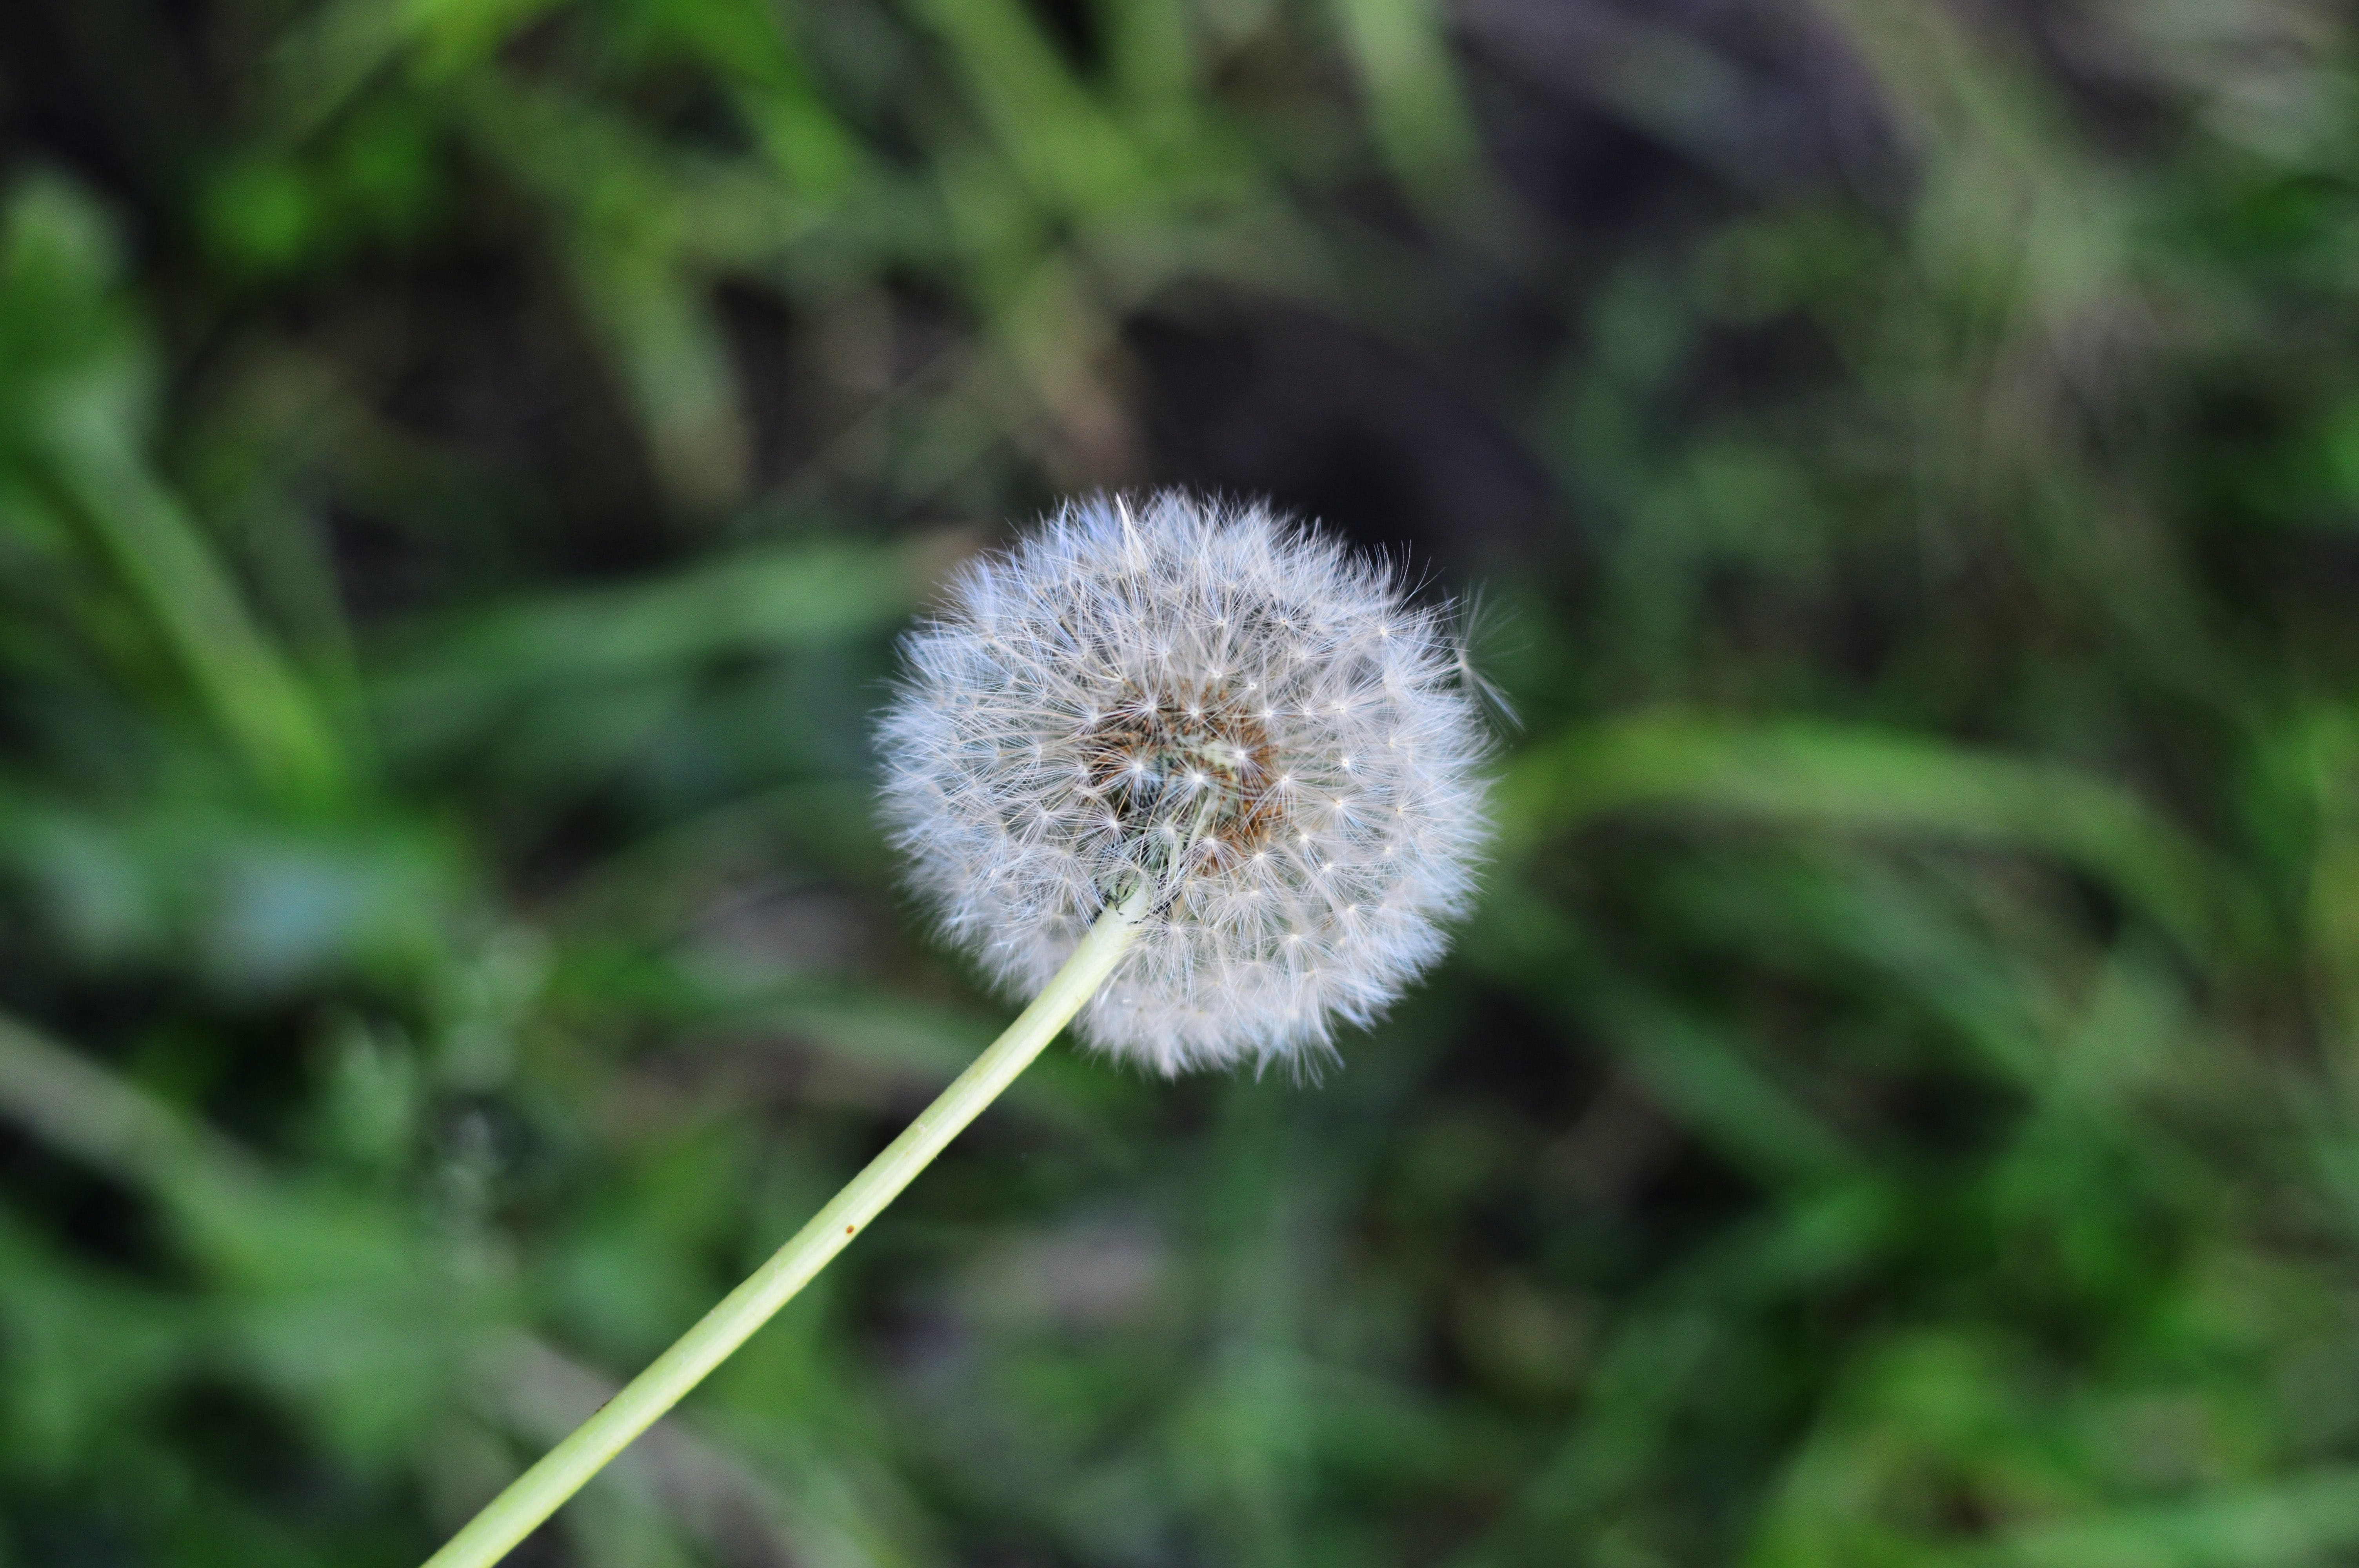 Free stock photo of beauty, closeup, dandelion, dandelion seed